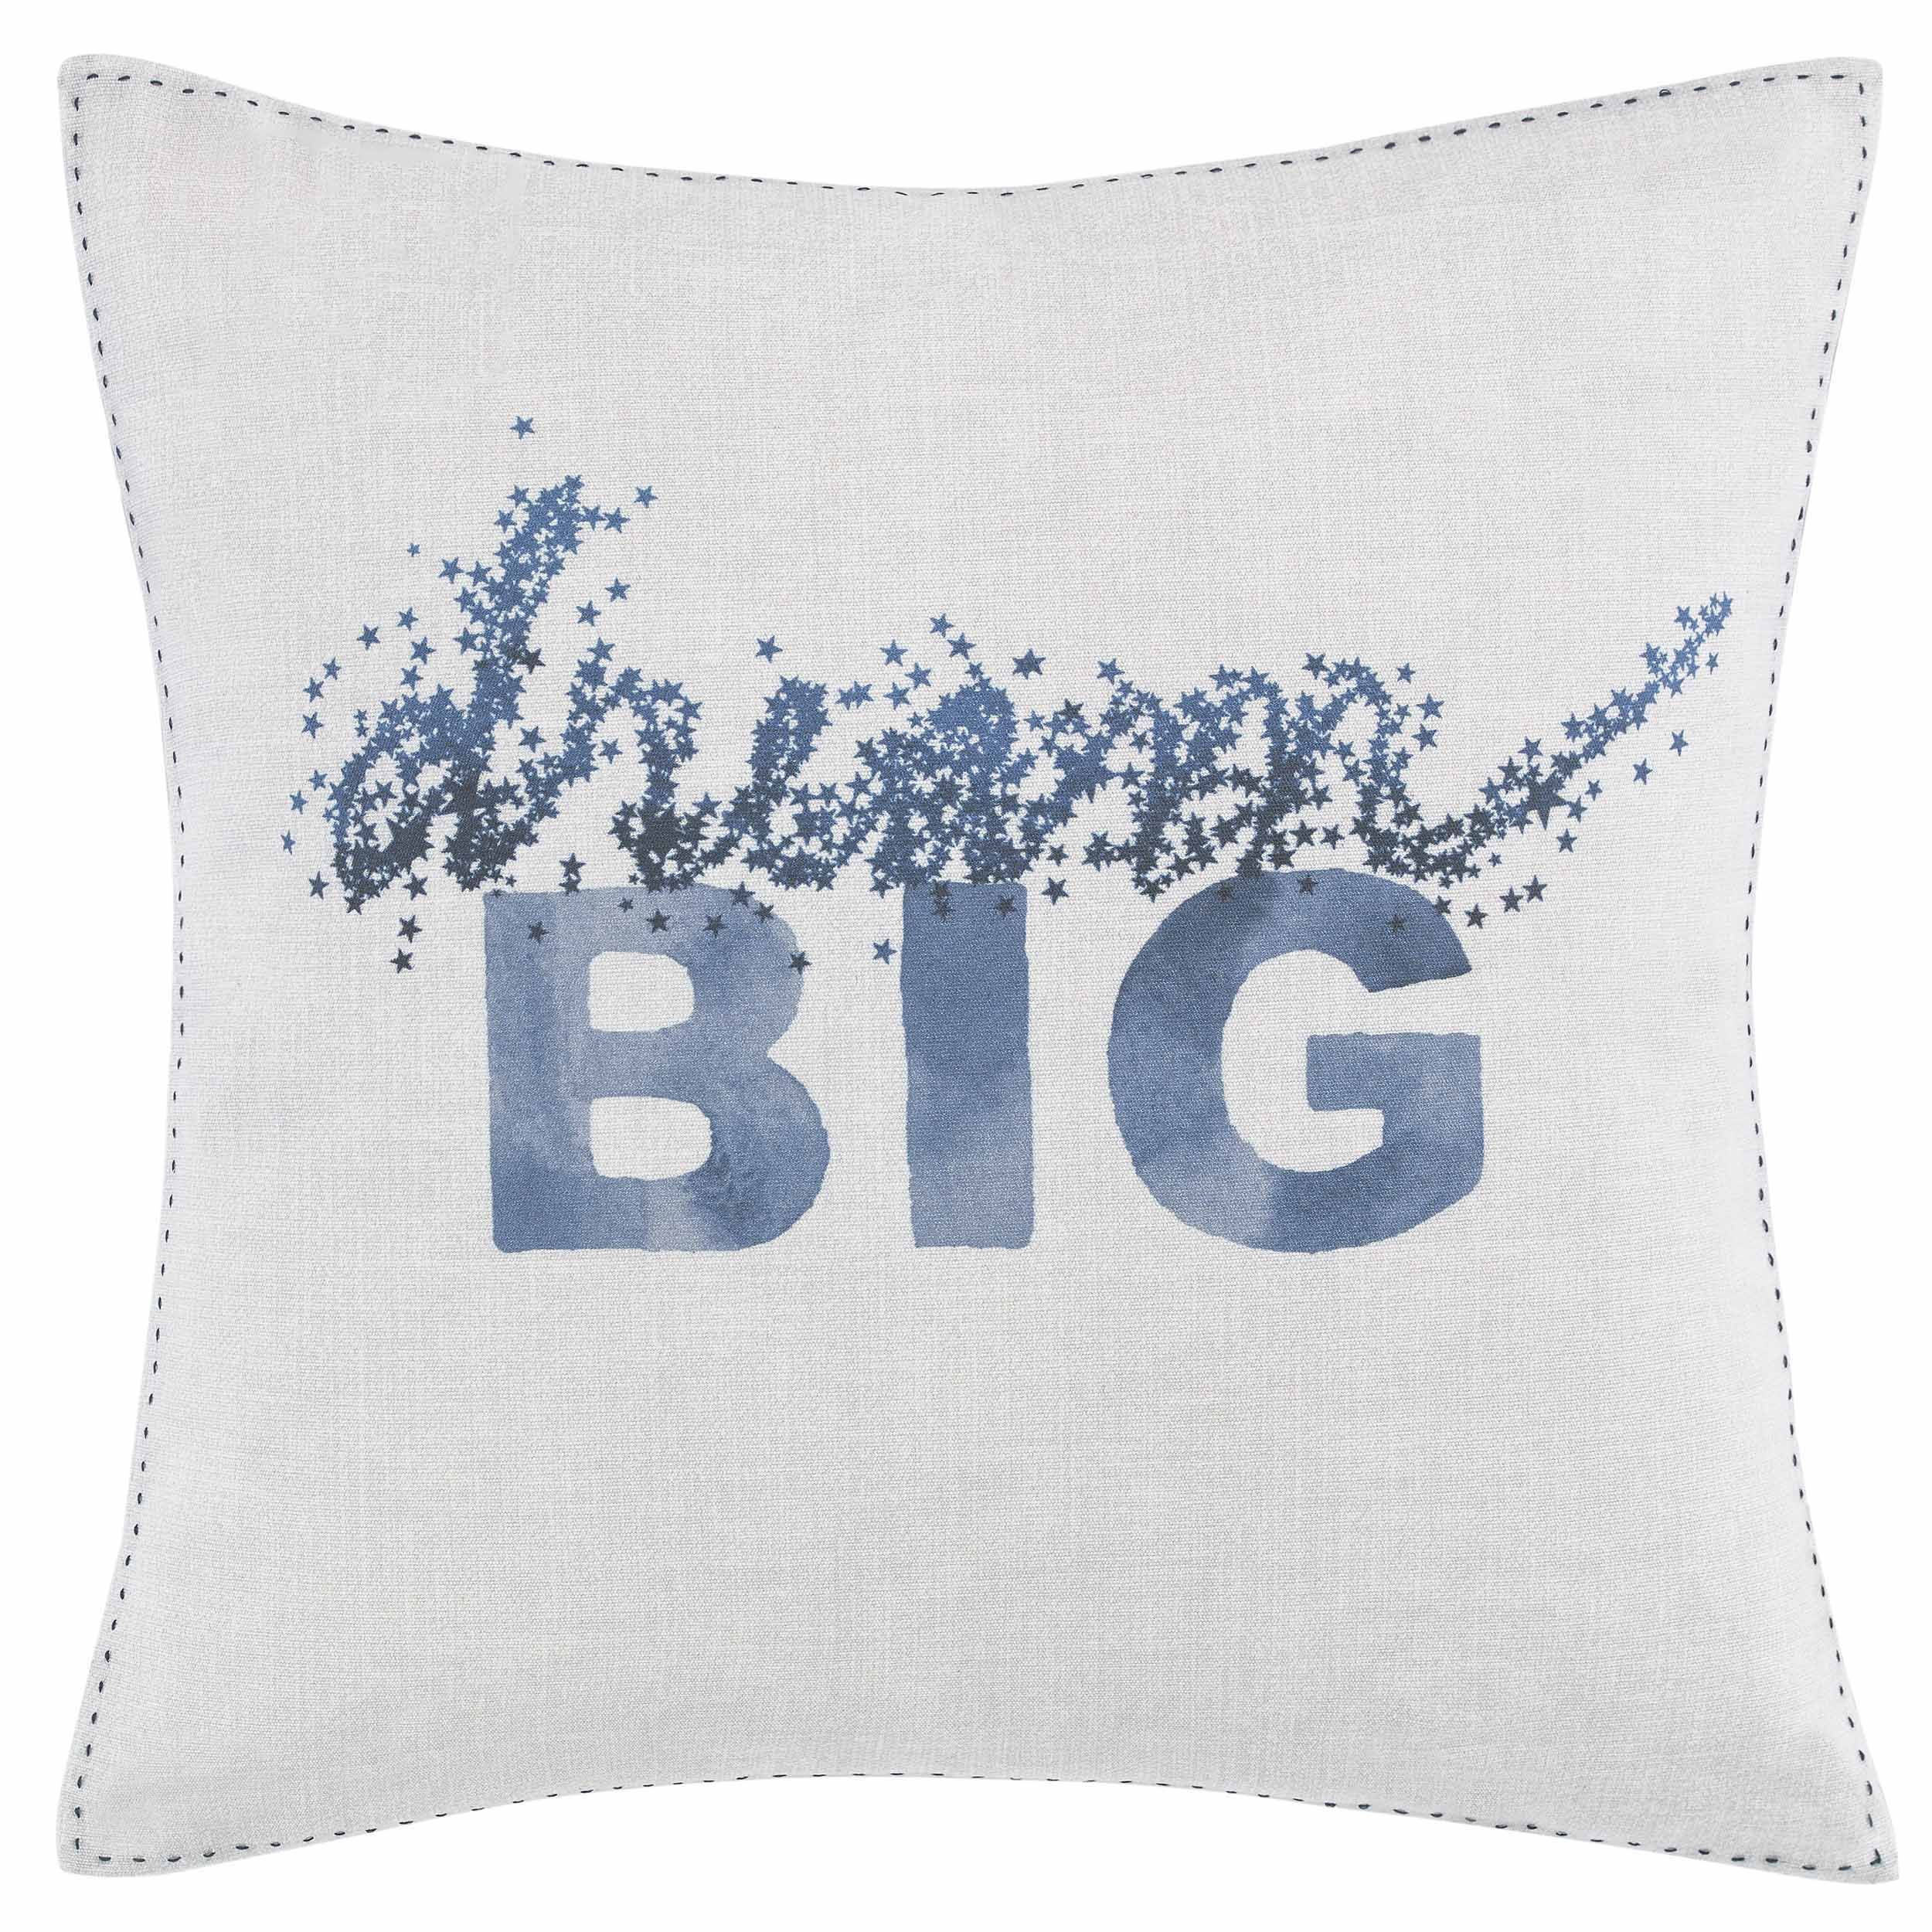 This dream big pillow from Dillard's is great for your newlywed nest! Click the image to find locations throughout Nashville to get these wedding gifts!